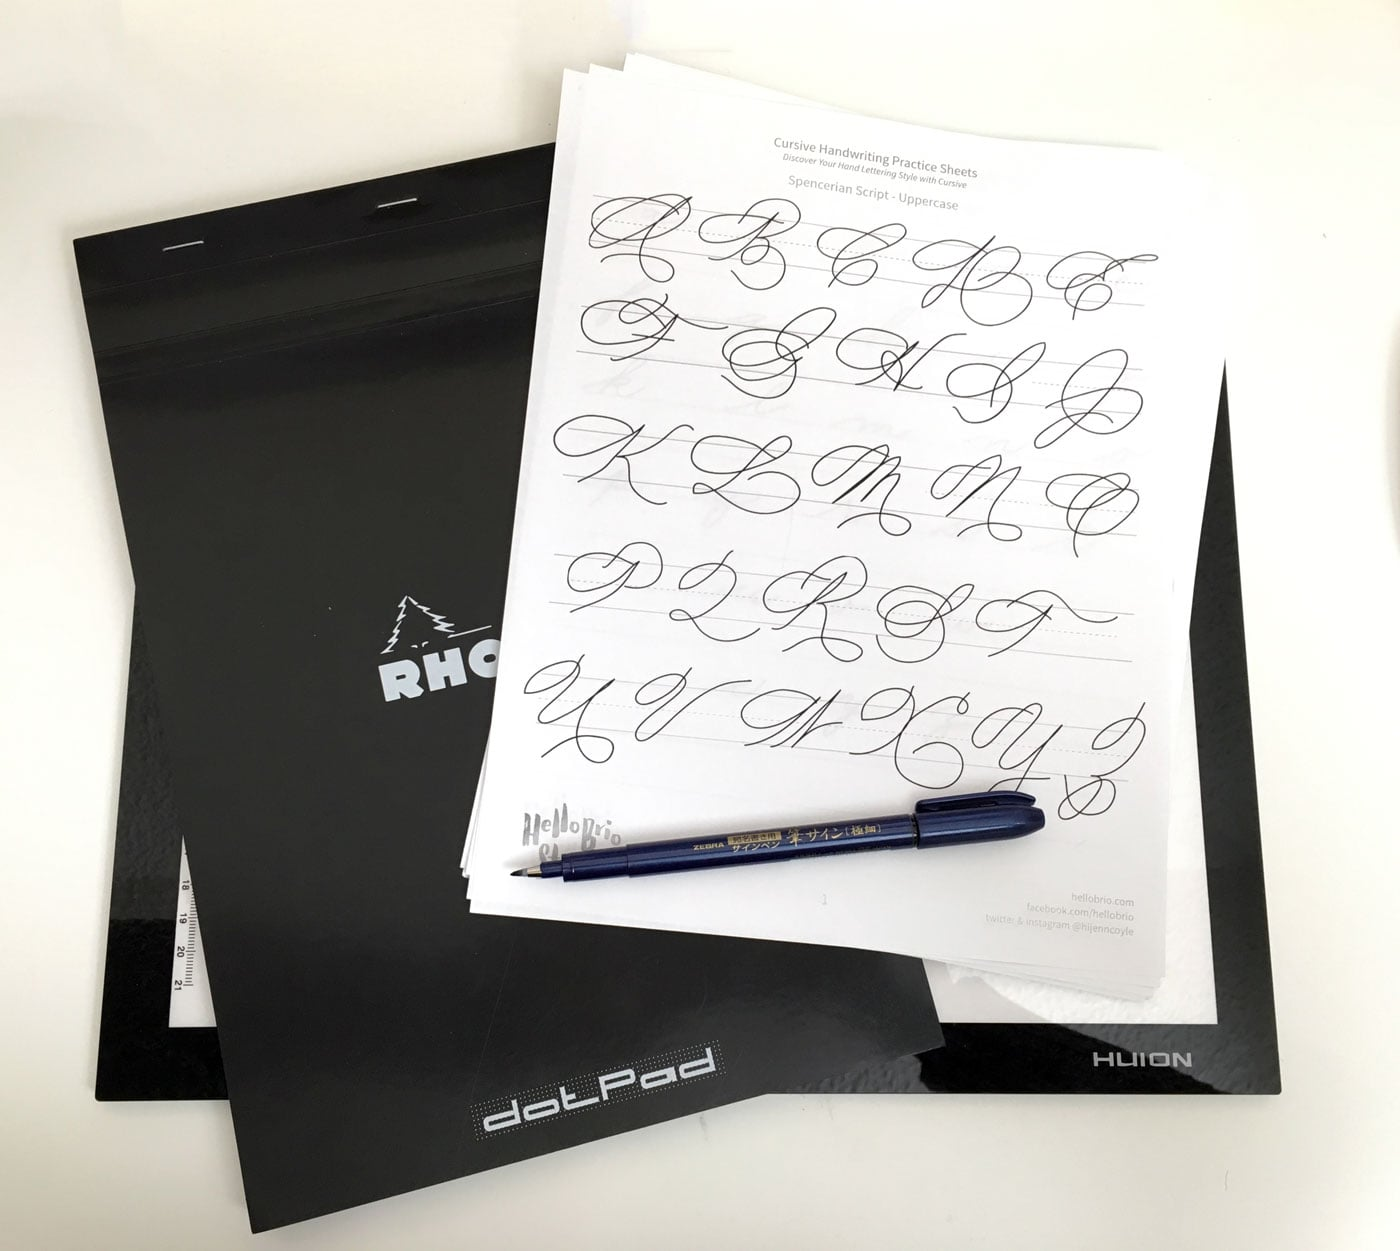 Materials needed to trace cursive worksheets: lightpad, rhodia dot pad, zebra brush pen, cursive worksheets